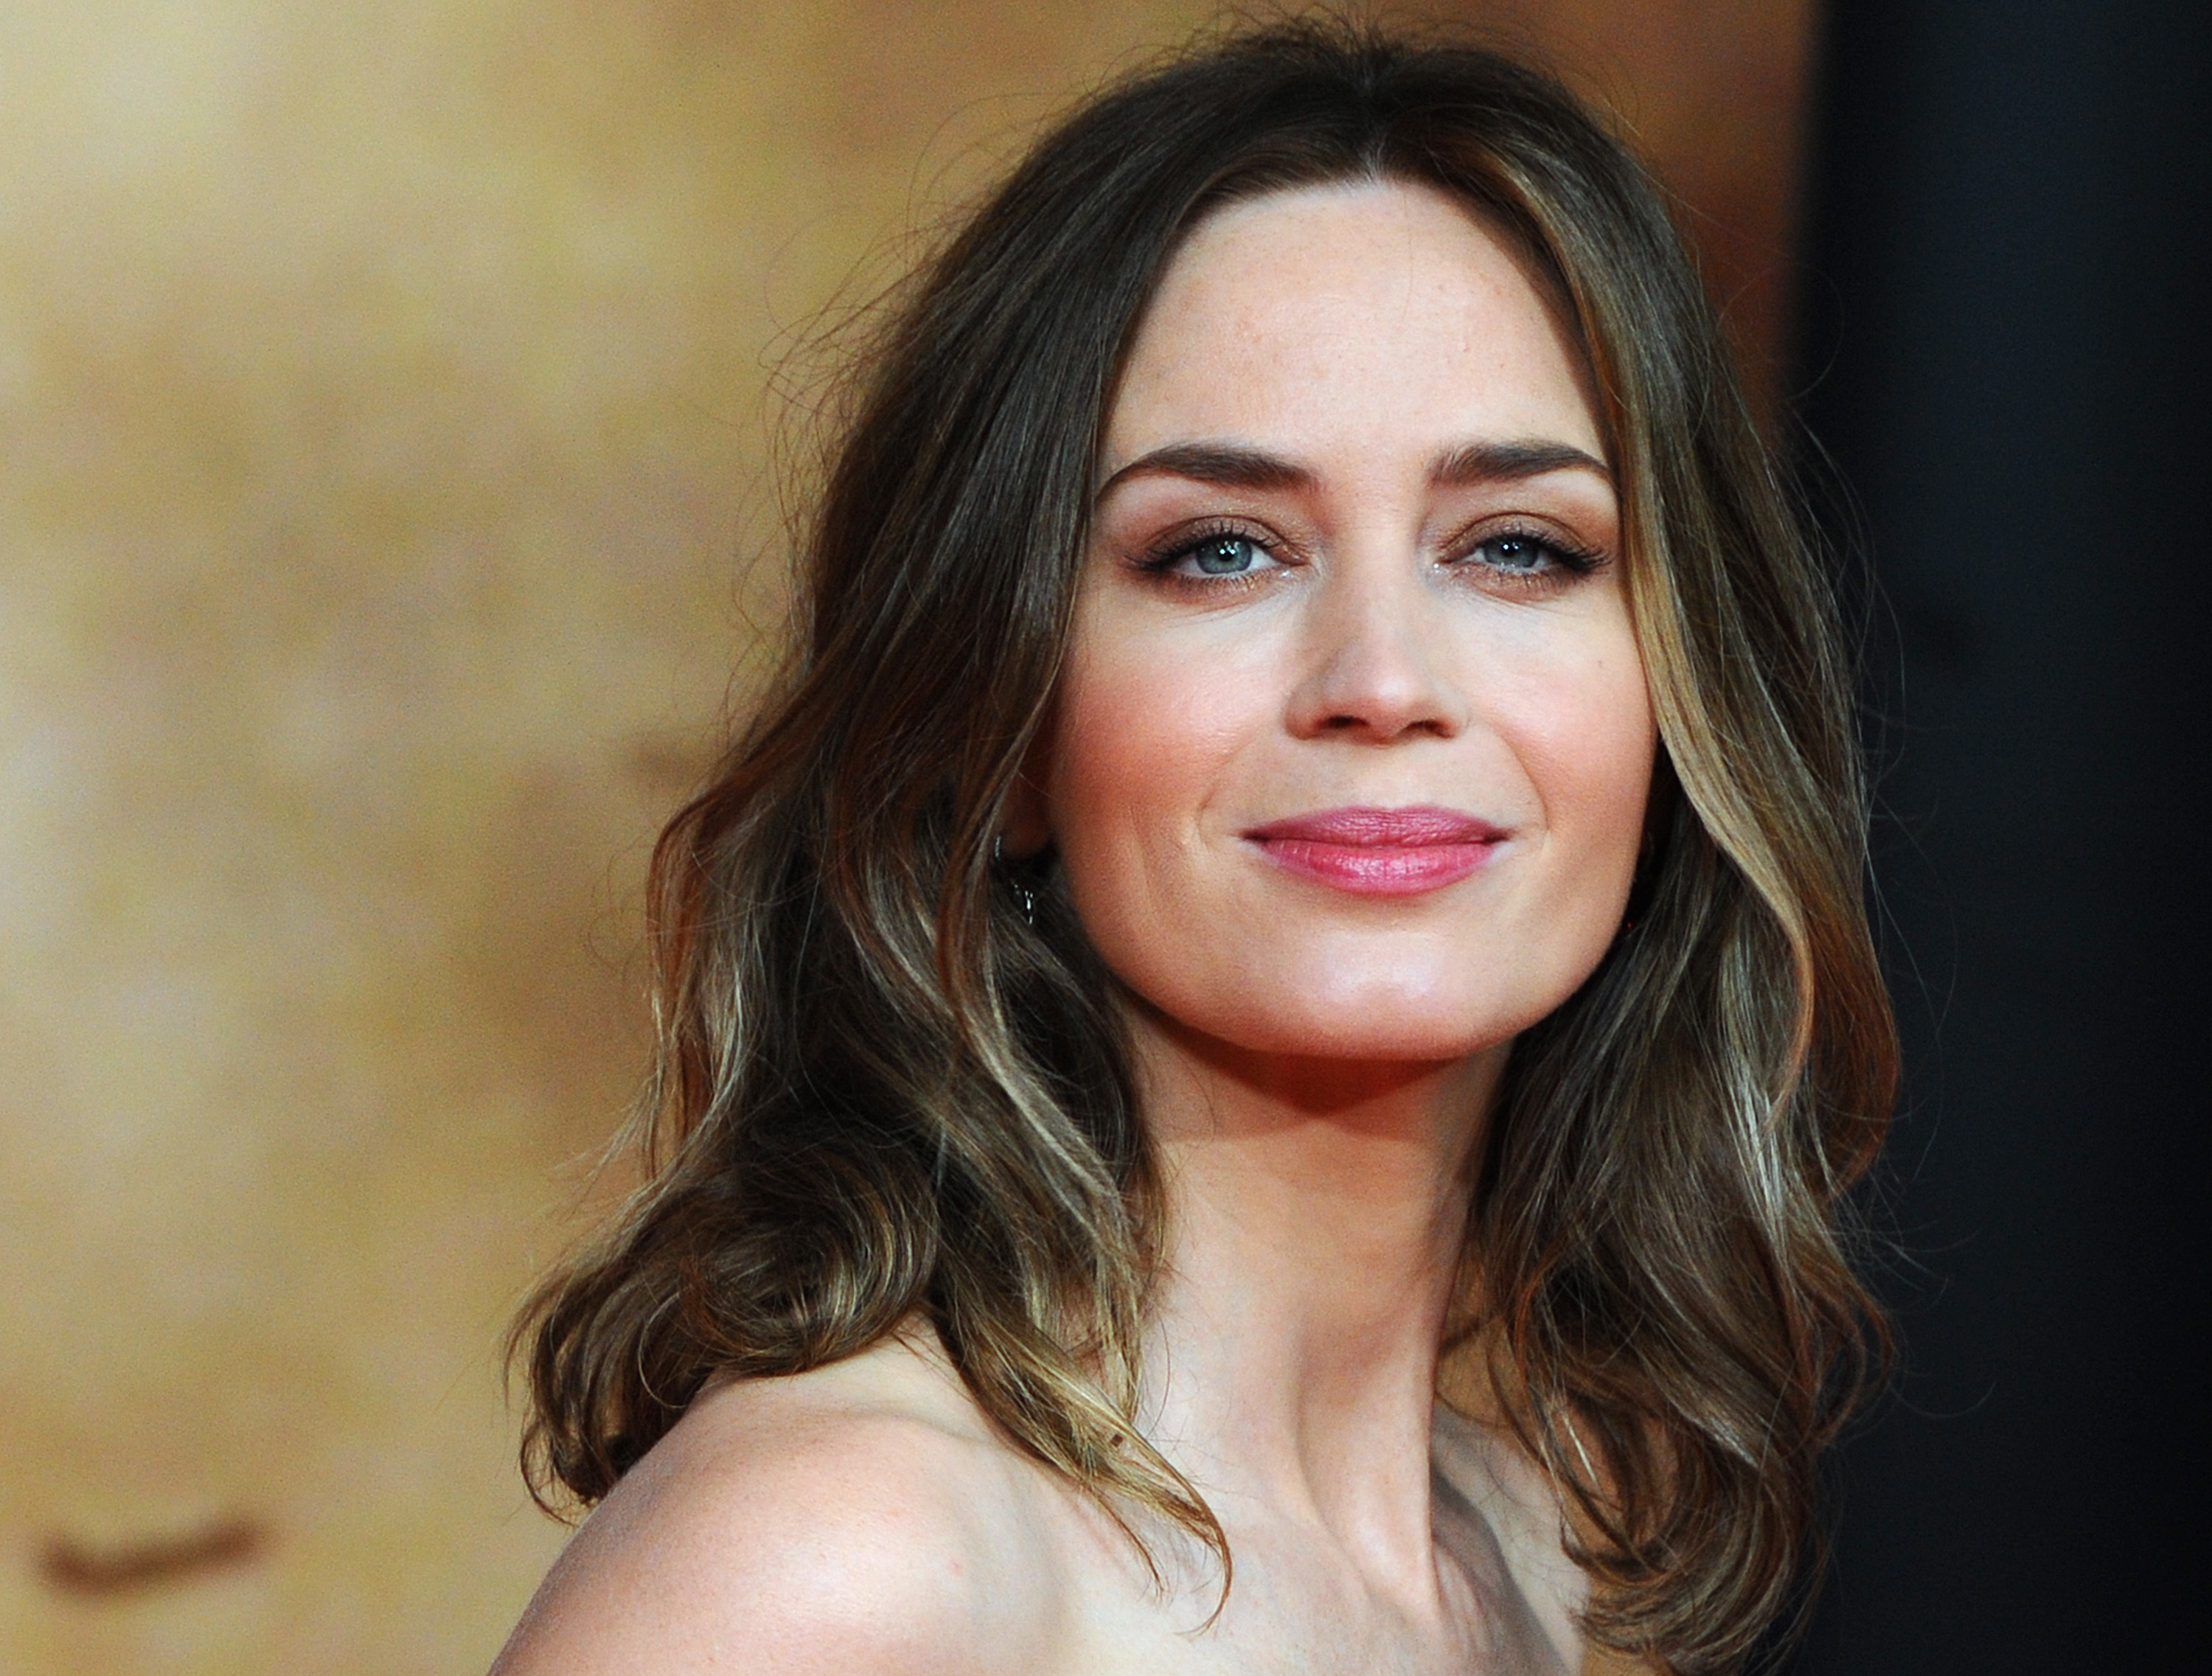 19 Brunette Celebrities Who Dyed Their Hair Blonde Which Look Is